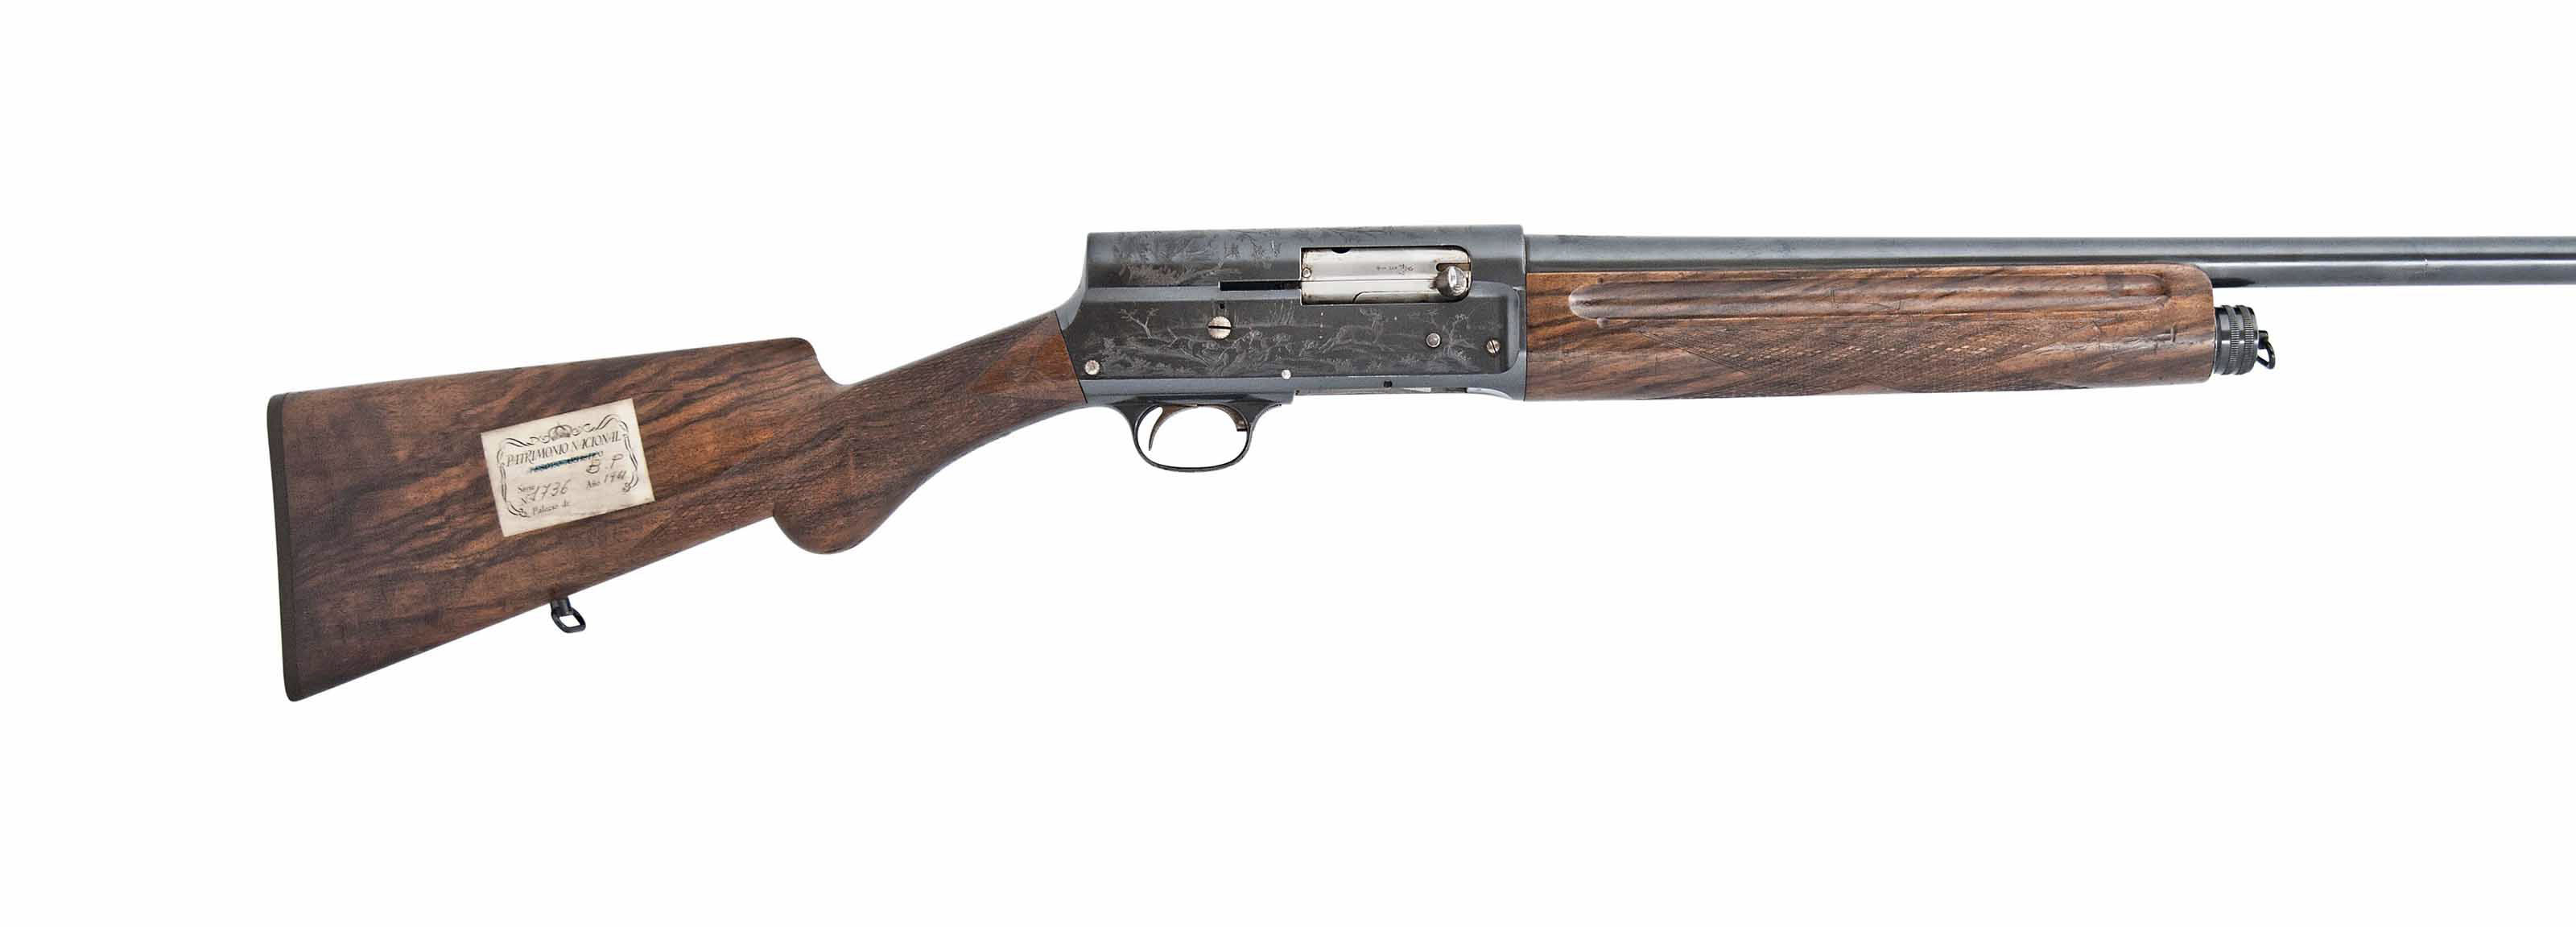 A FINE FACTORY ENGRAVED 12-BORE 'BROWNING'S PATENT' FIVE-SHOT SELF-LOADING SPORTING SHOTGUN